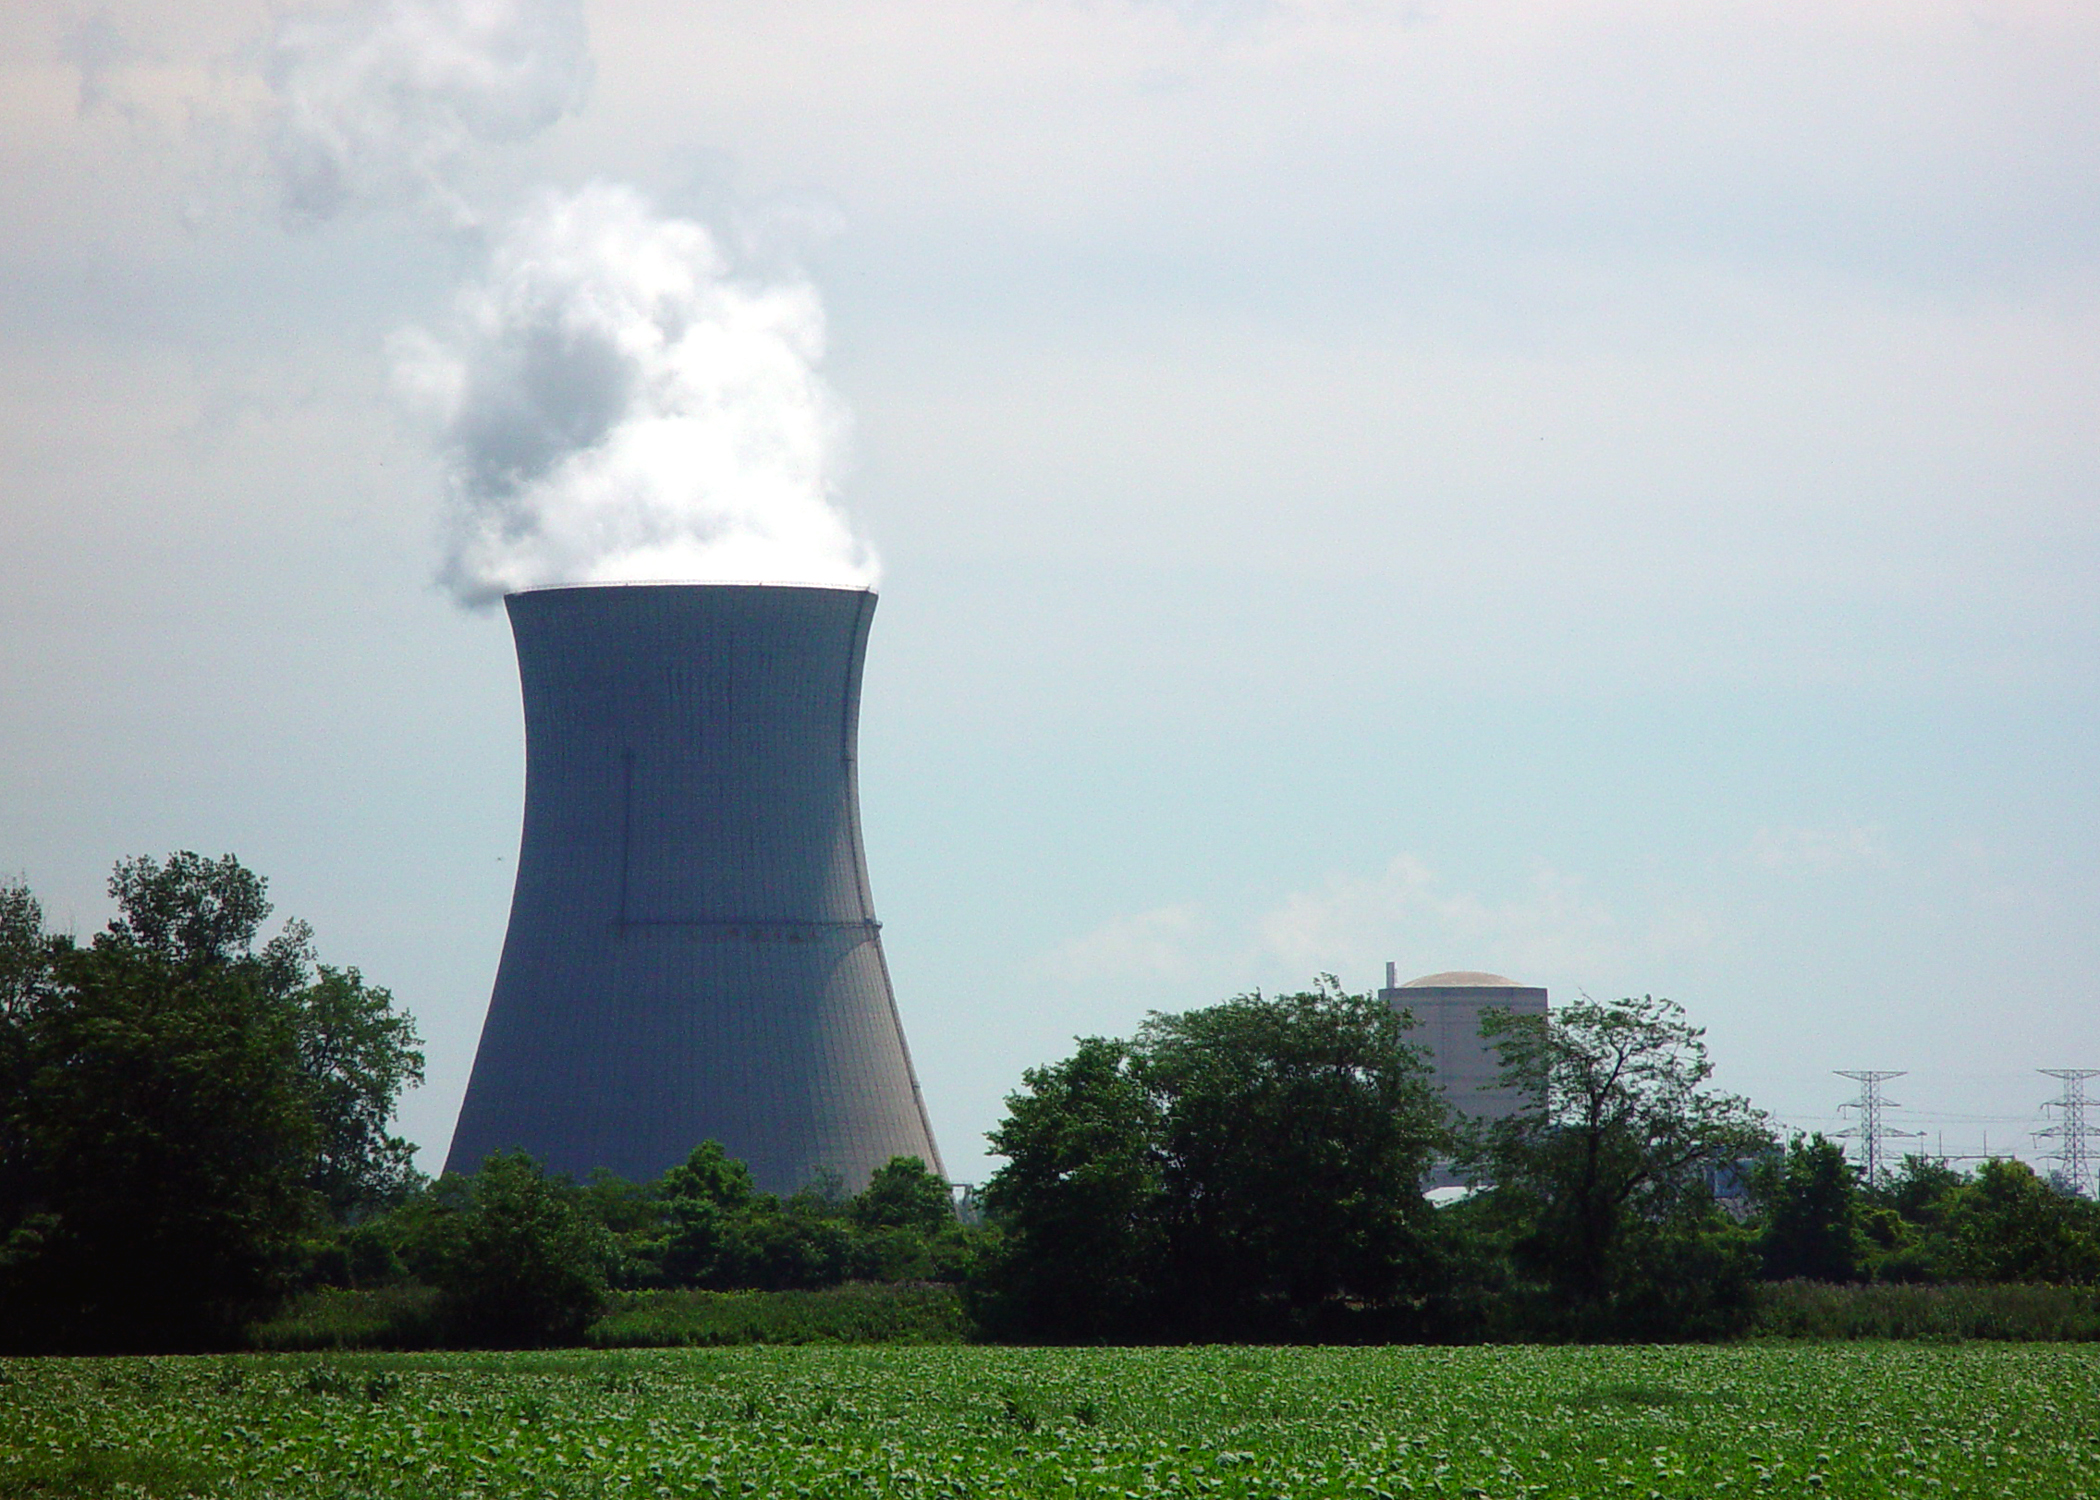 Japan passes an IAEA inspection of the nation's nuclear facilities and protocols.